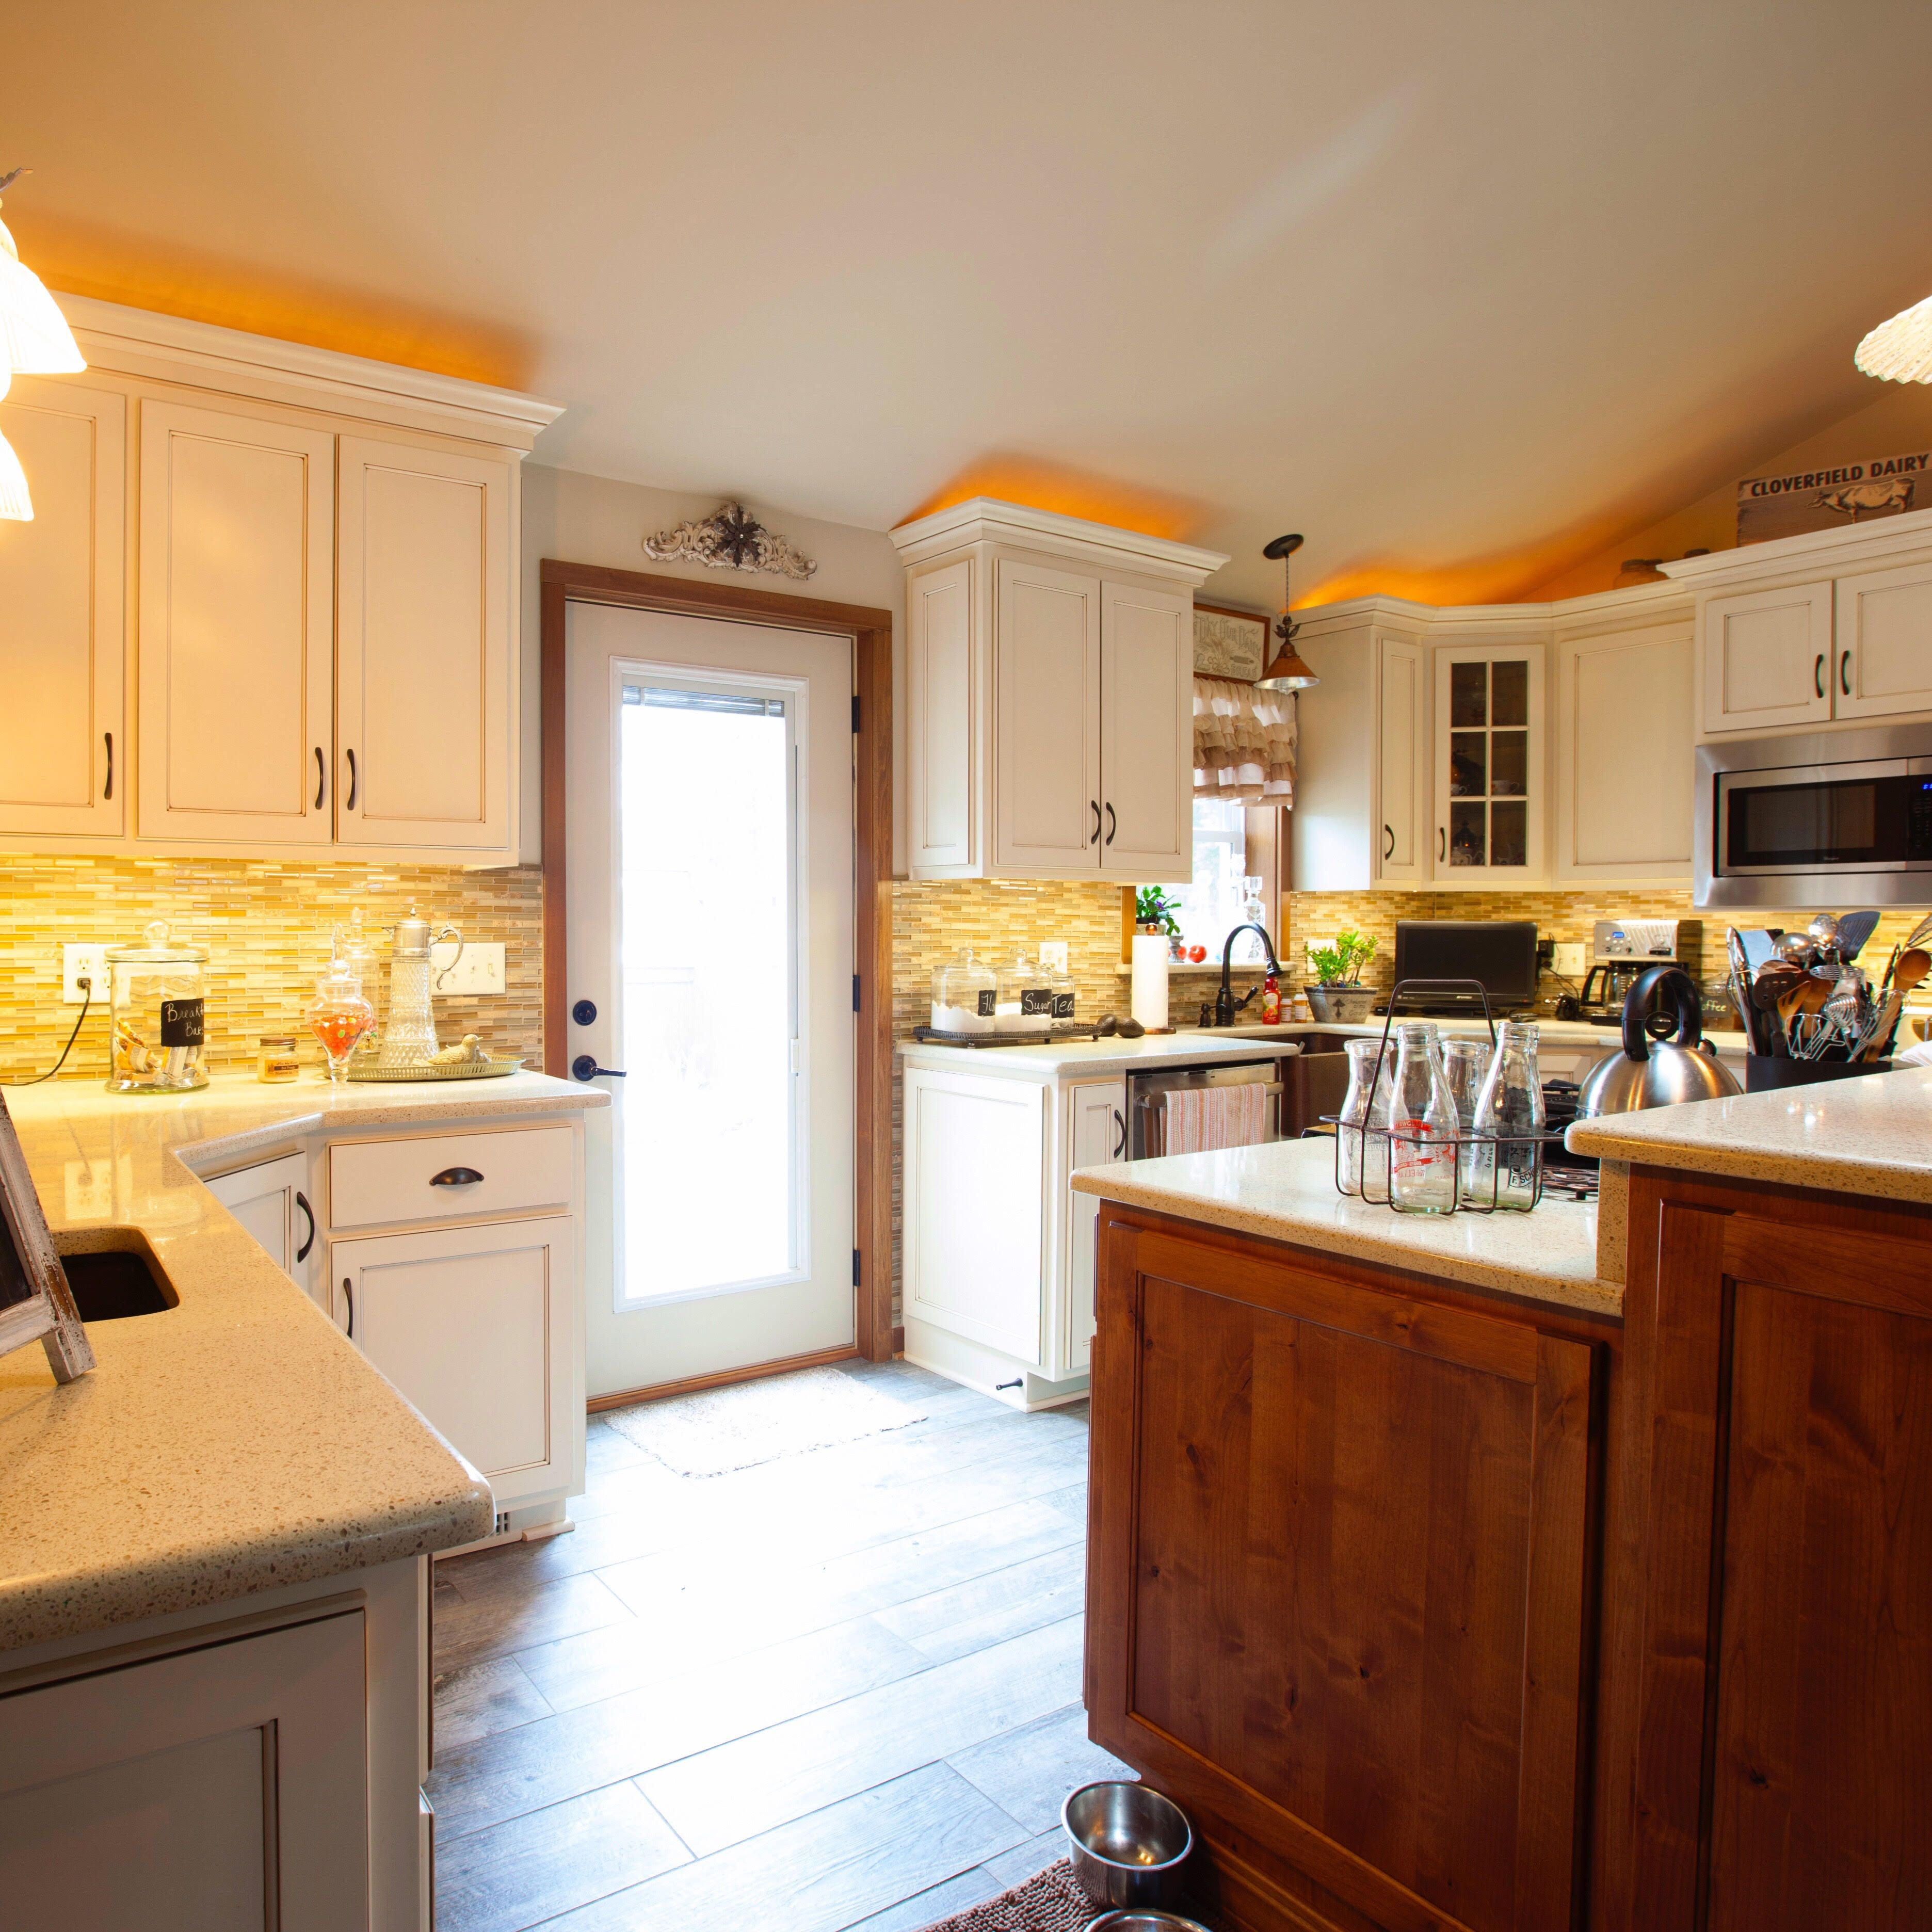 Mix Match Create A Truly Original Look In Your Kitchen By